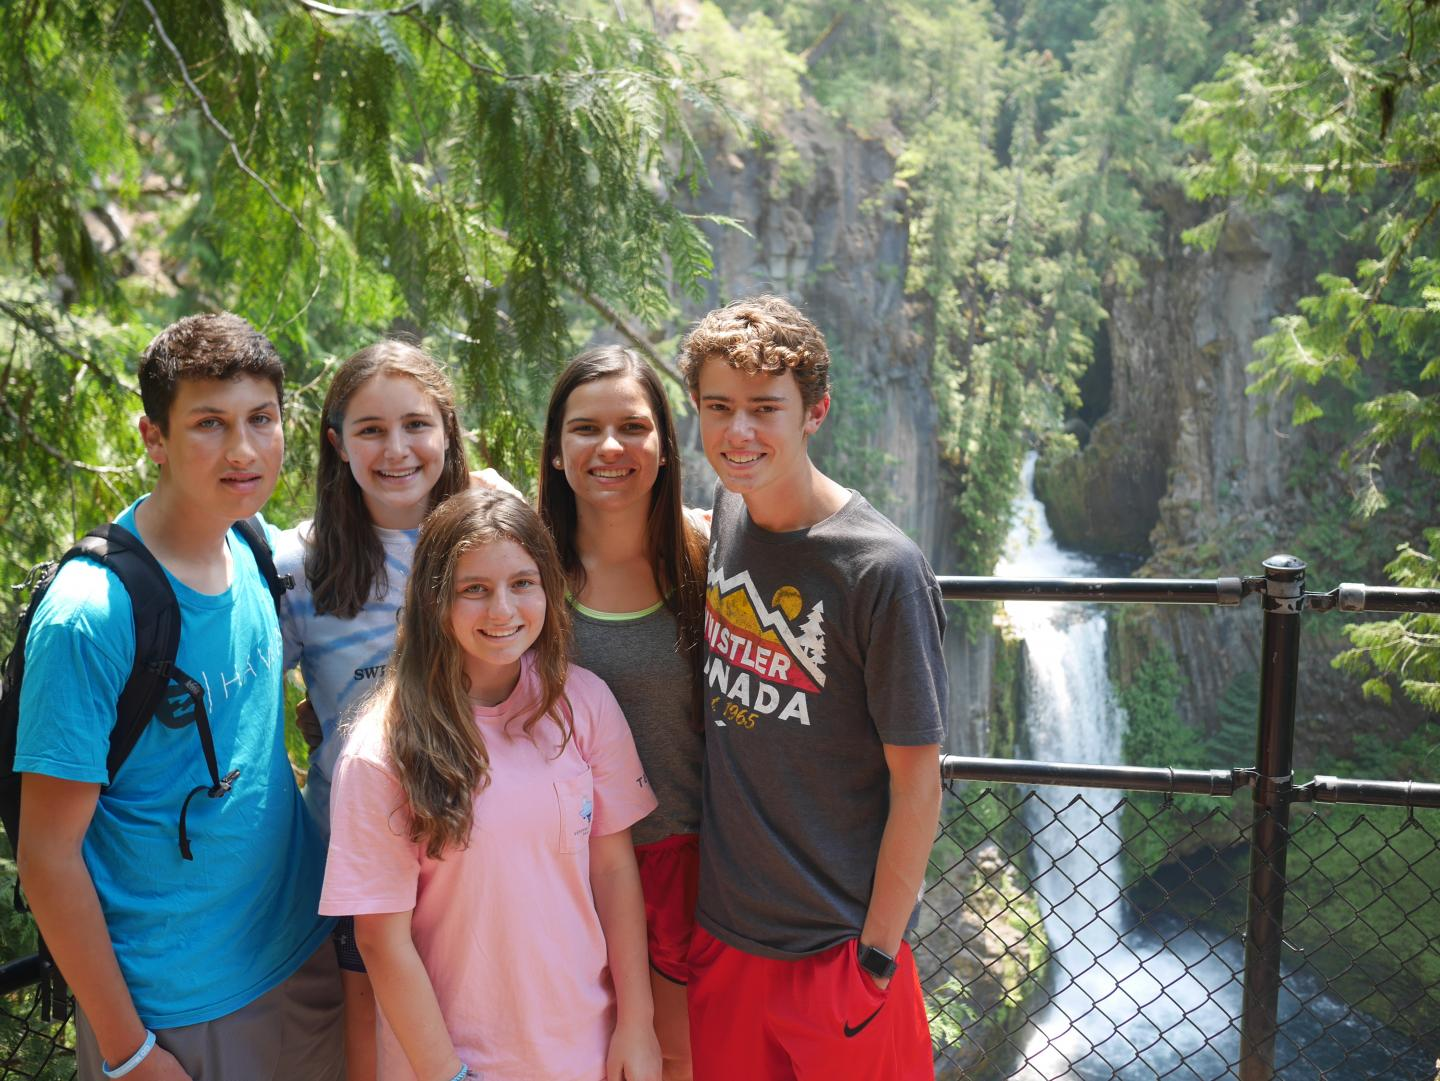 A group of teens takes a photo at a waterfall during their summer travel program in North America.